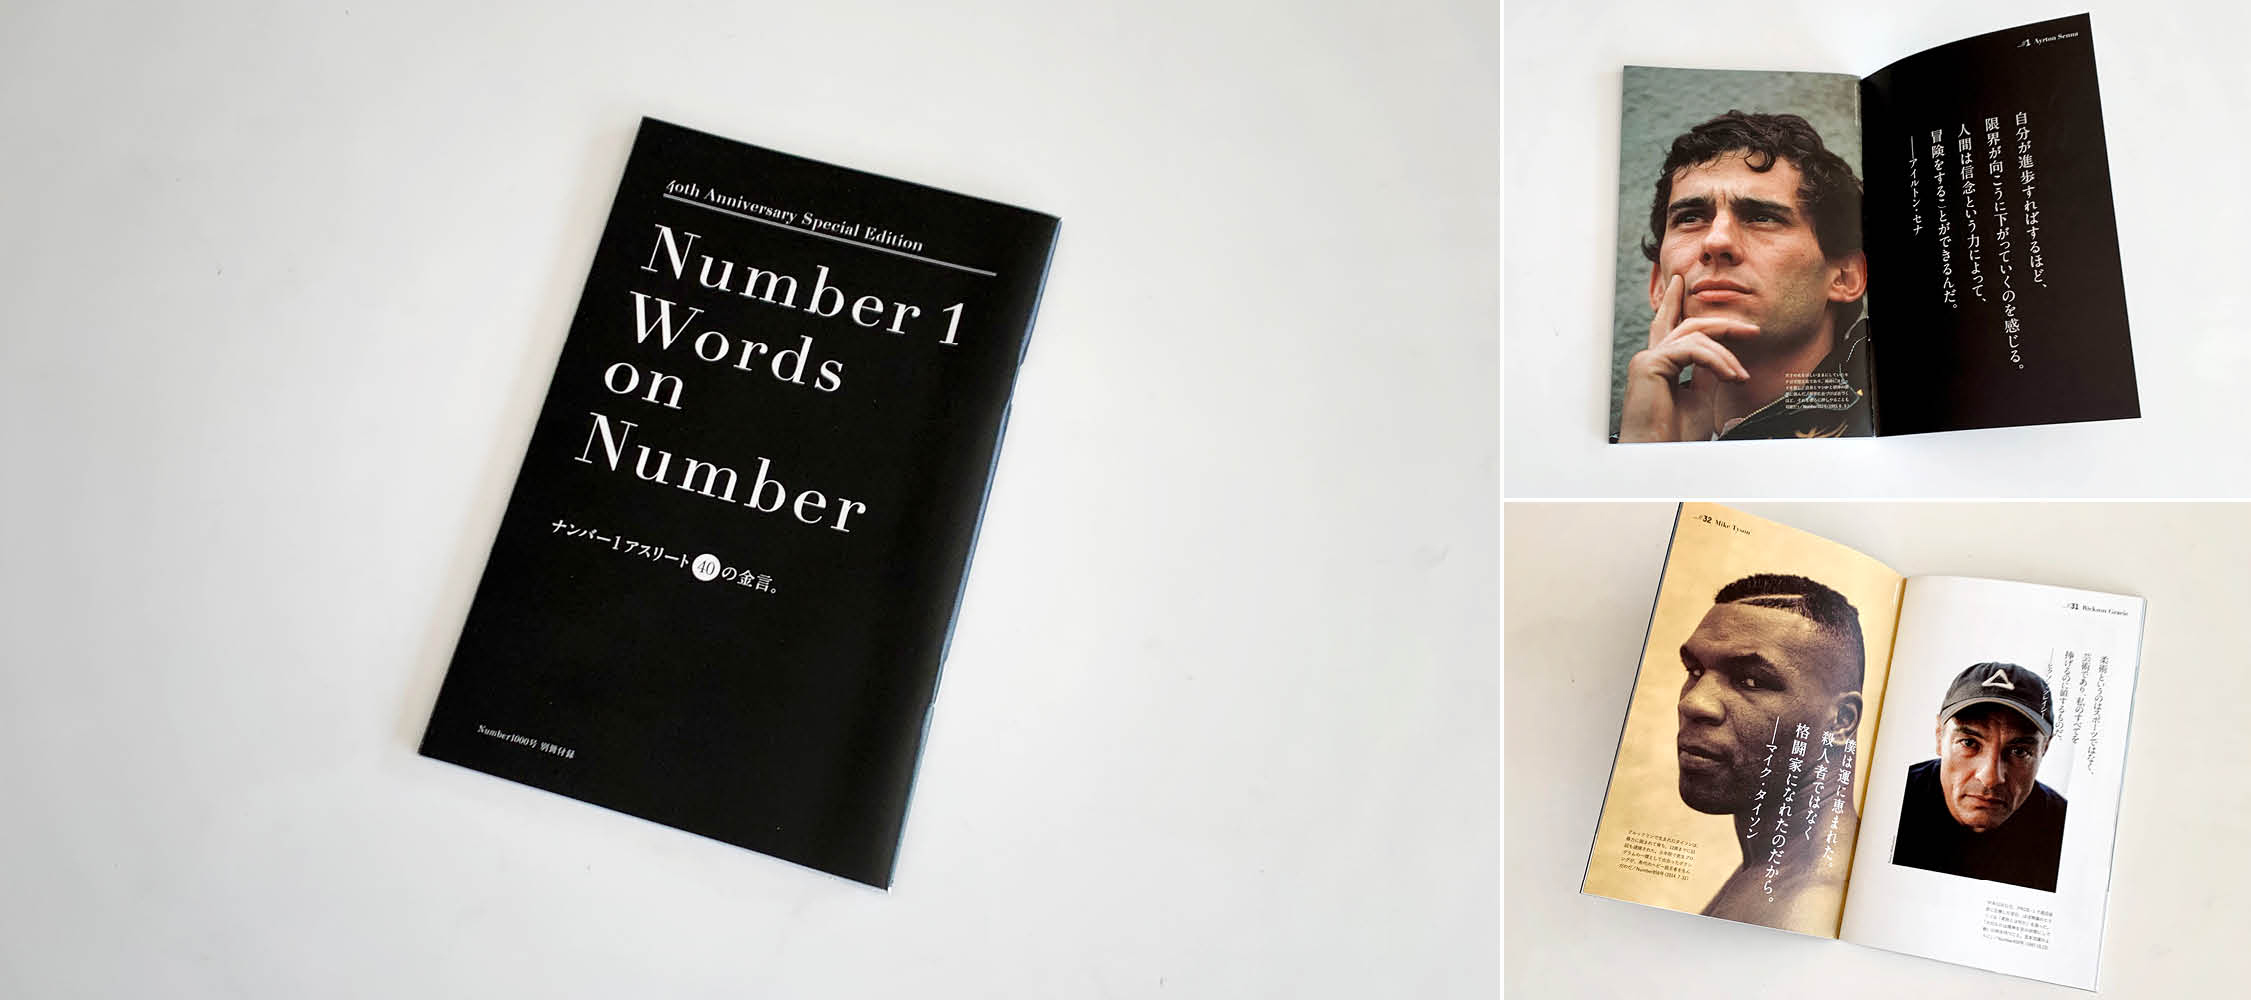 Number / 40th anniversary special edition